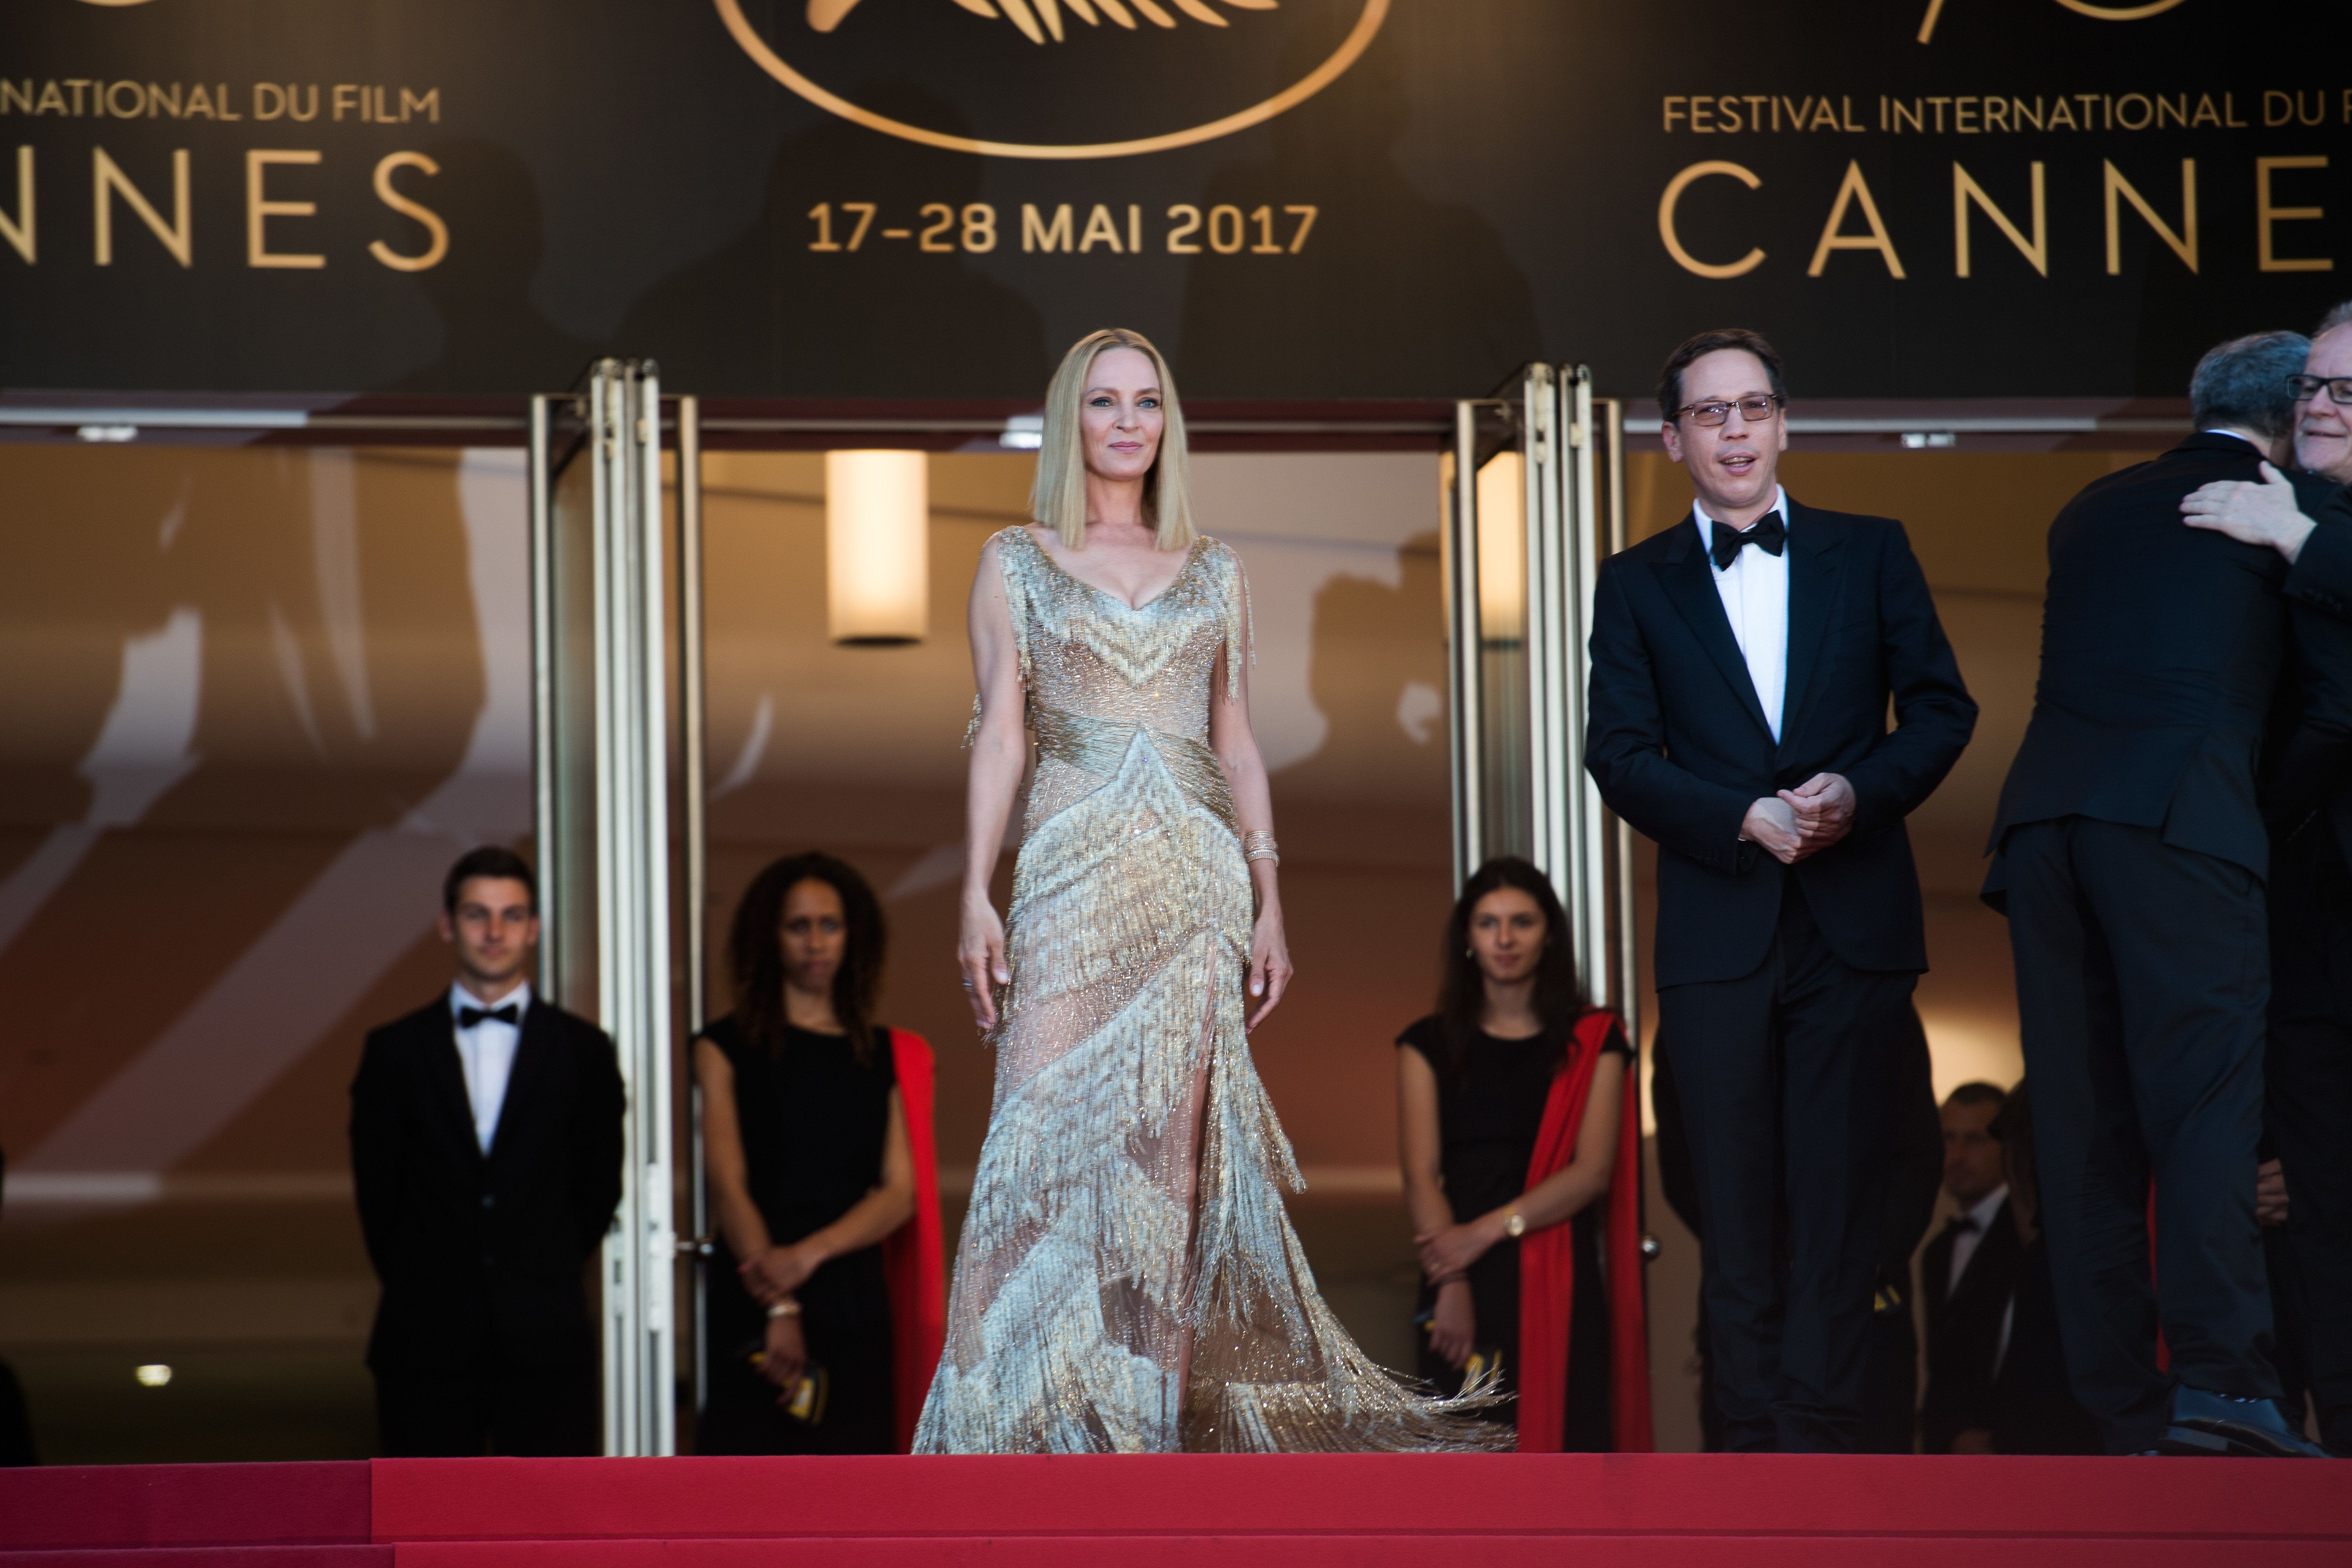 Cannes 2017: Uma Thurman's Nearly-Naked Dress Stole The Show On Closing